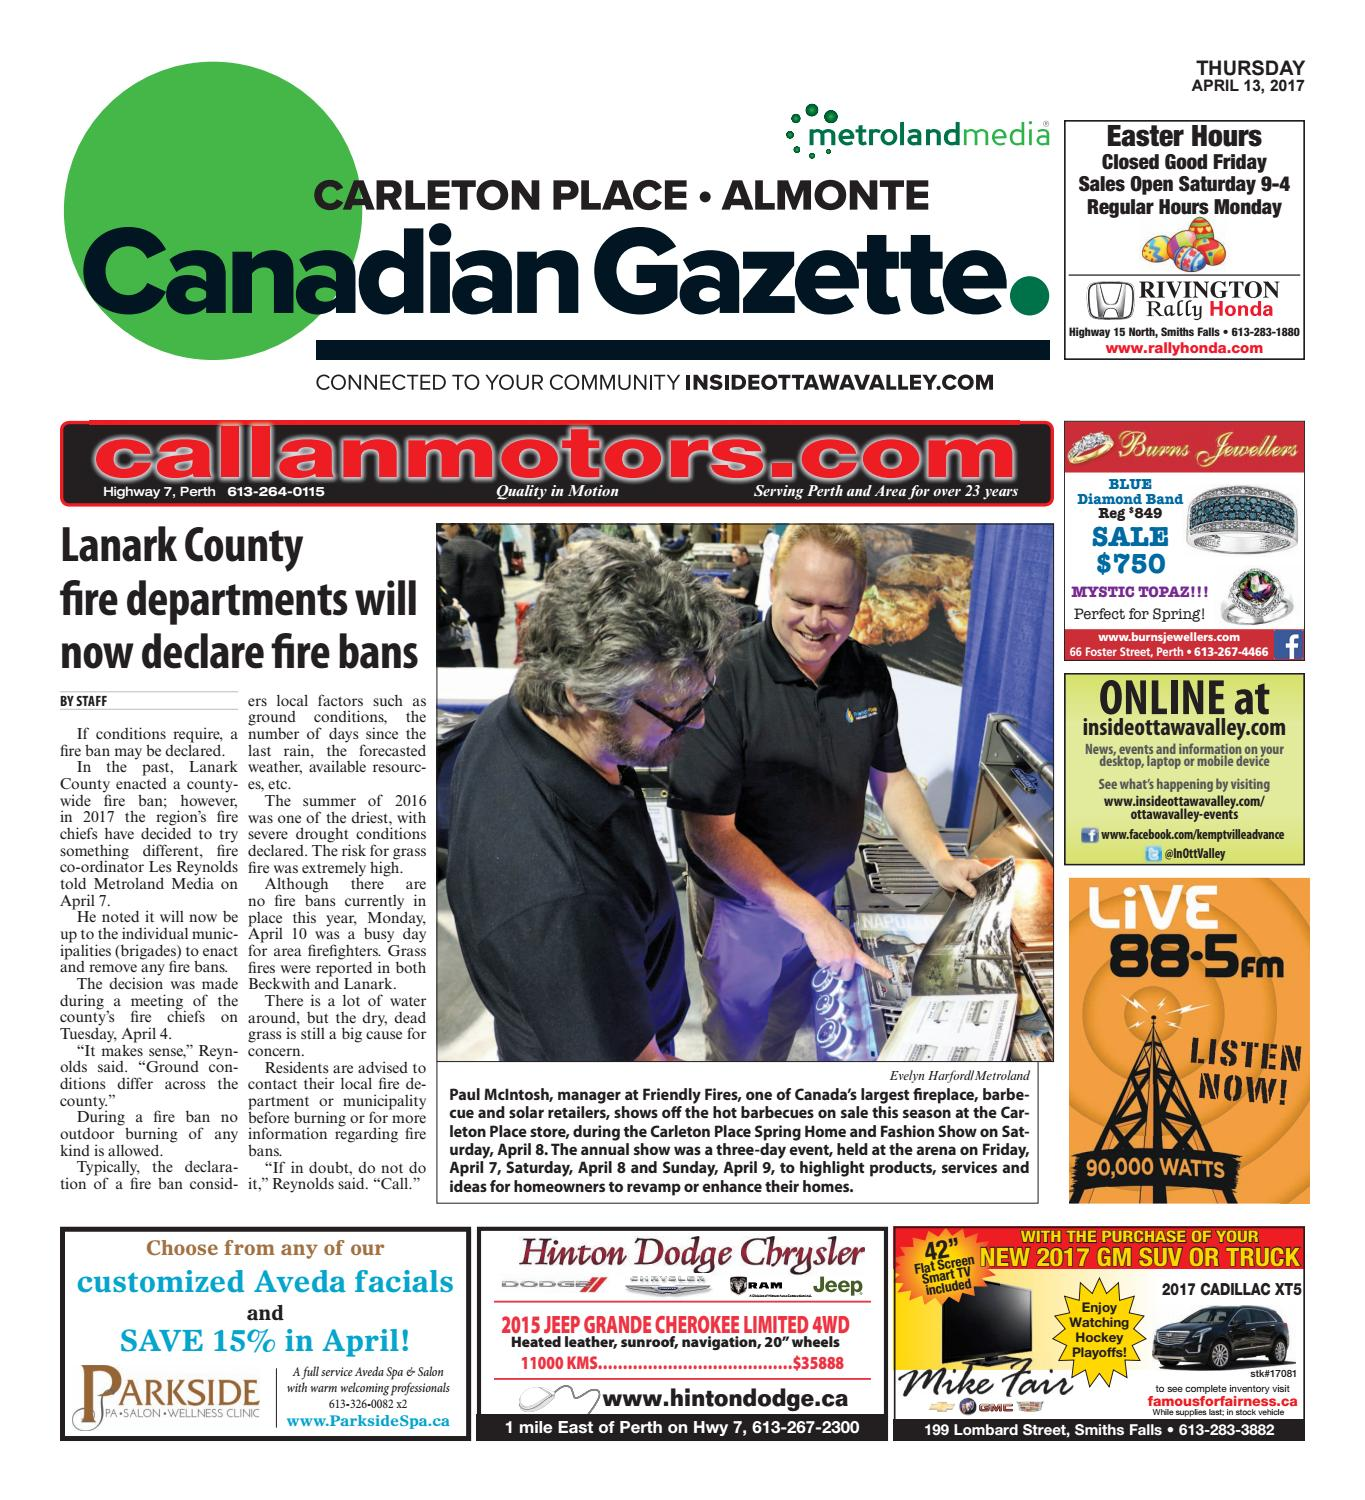 Almontecarletonplace041317 by metroland east almonte carleton almontecarletonplace041317 by metroland east almonte carleton place canadian gazette issuu fandeluxe Images